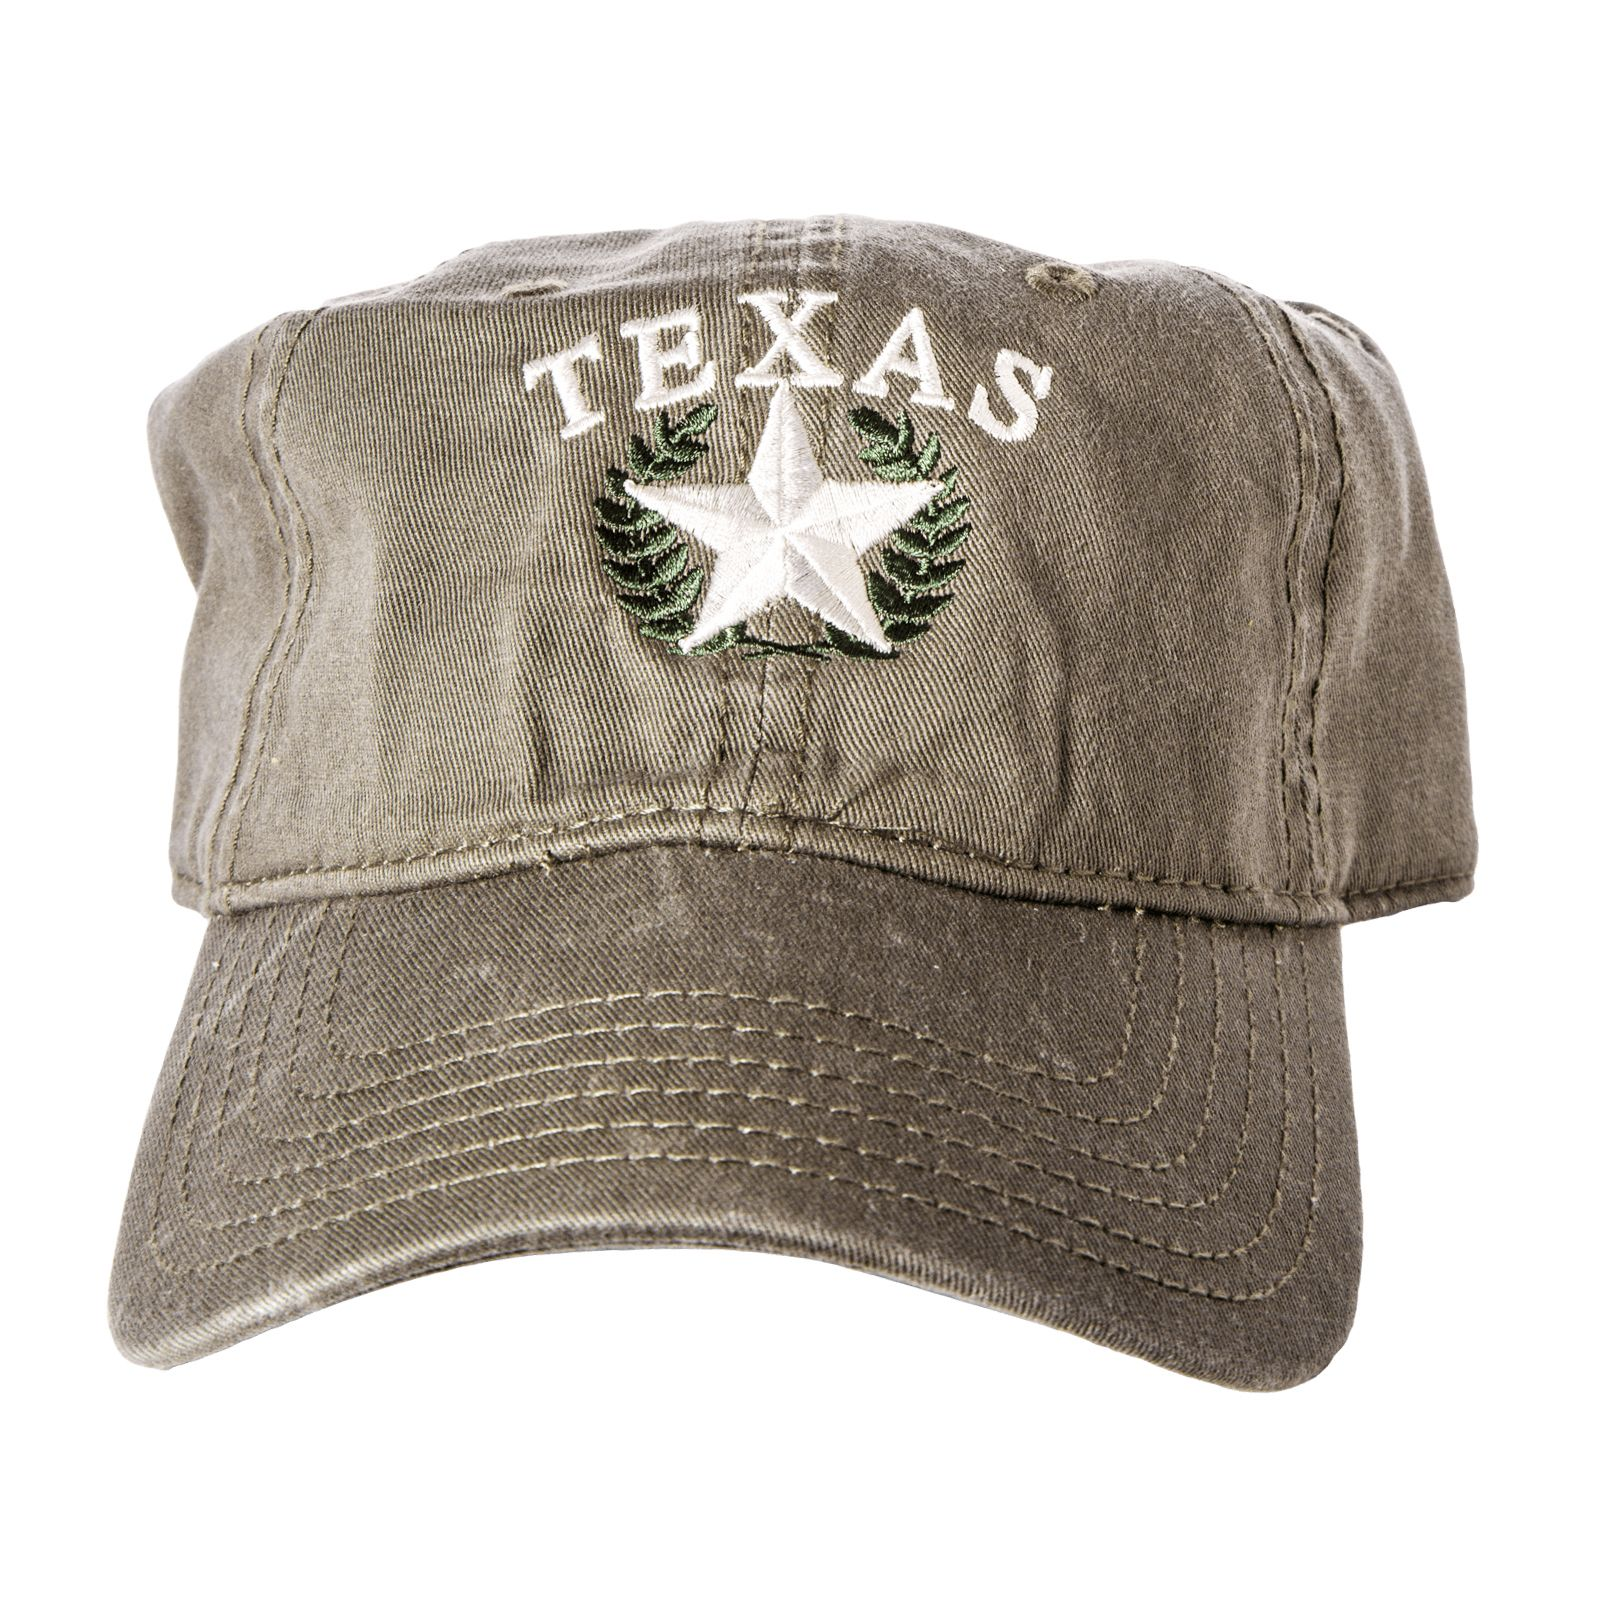 Texas Arms Baseball Cap